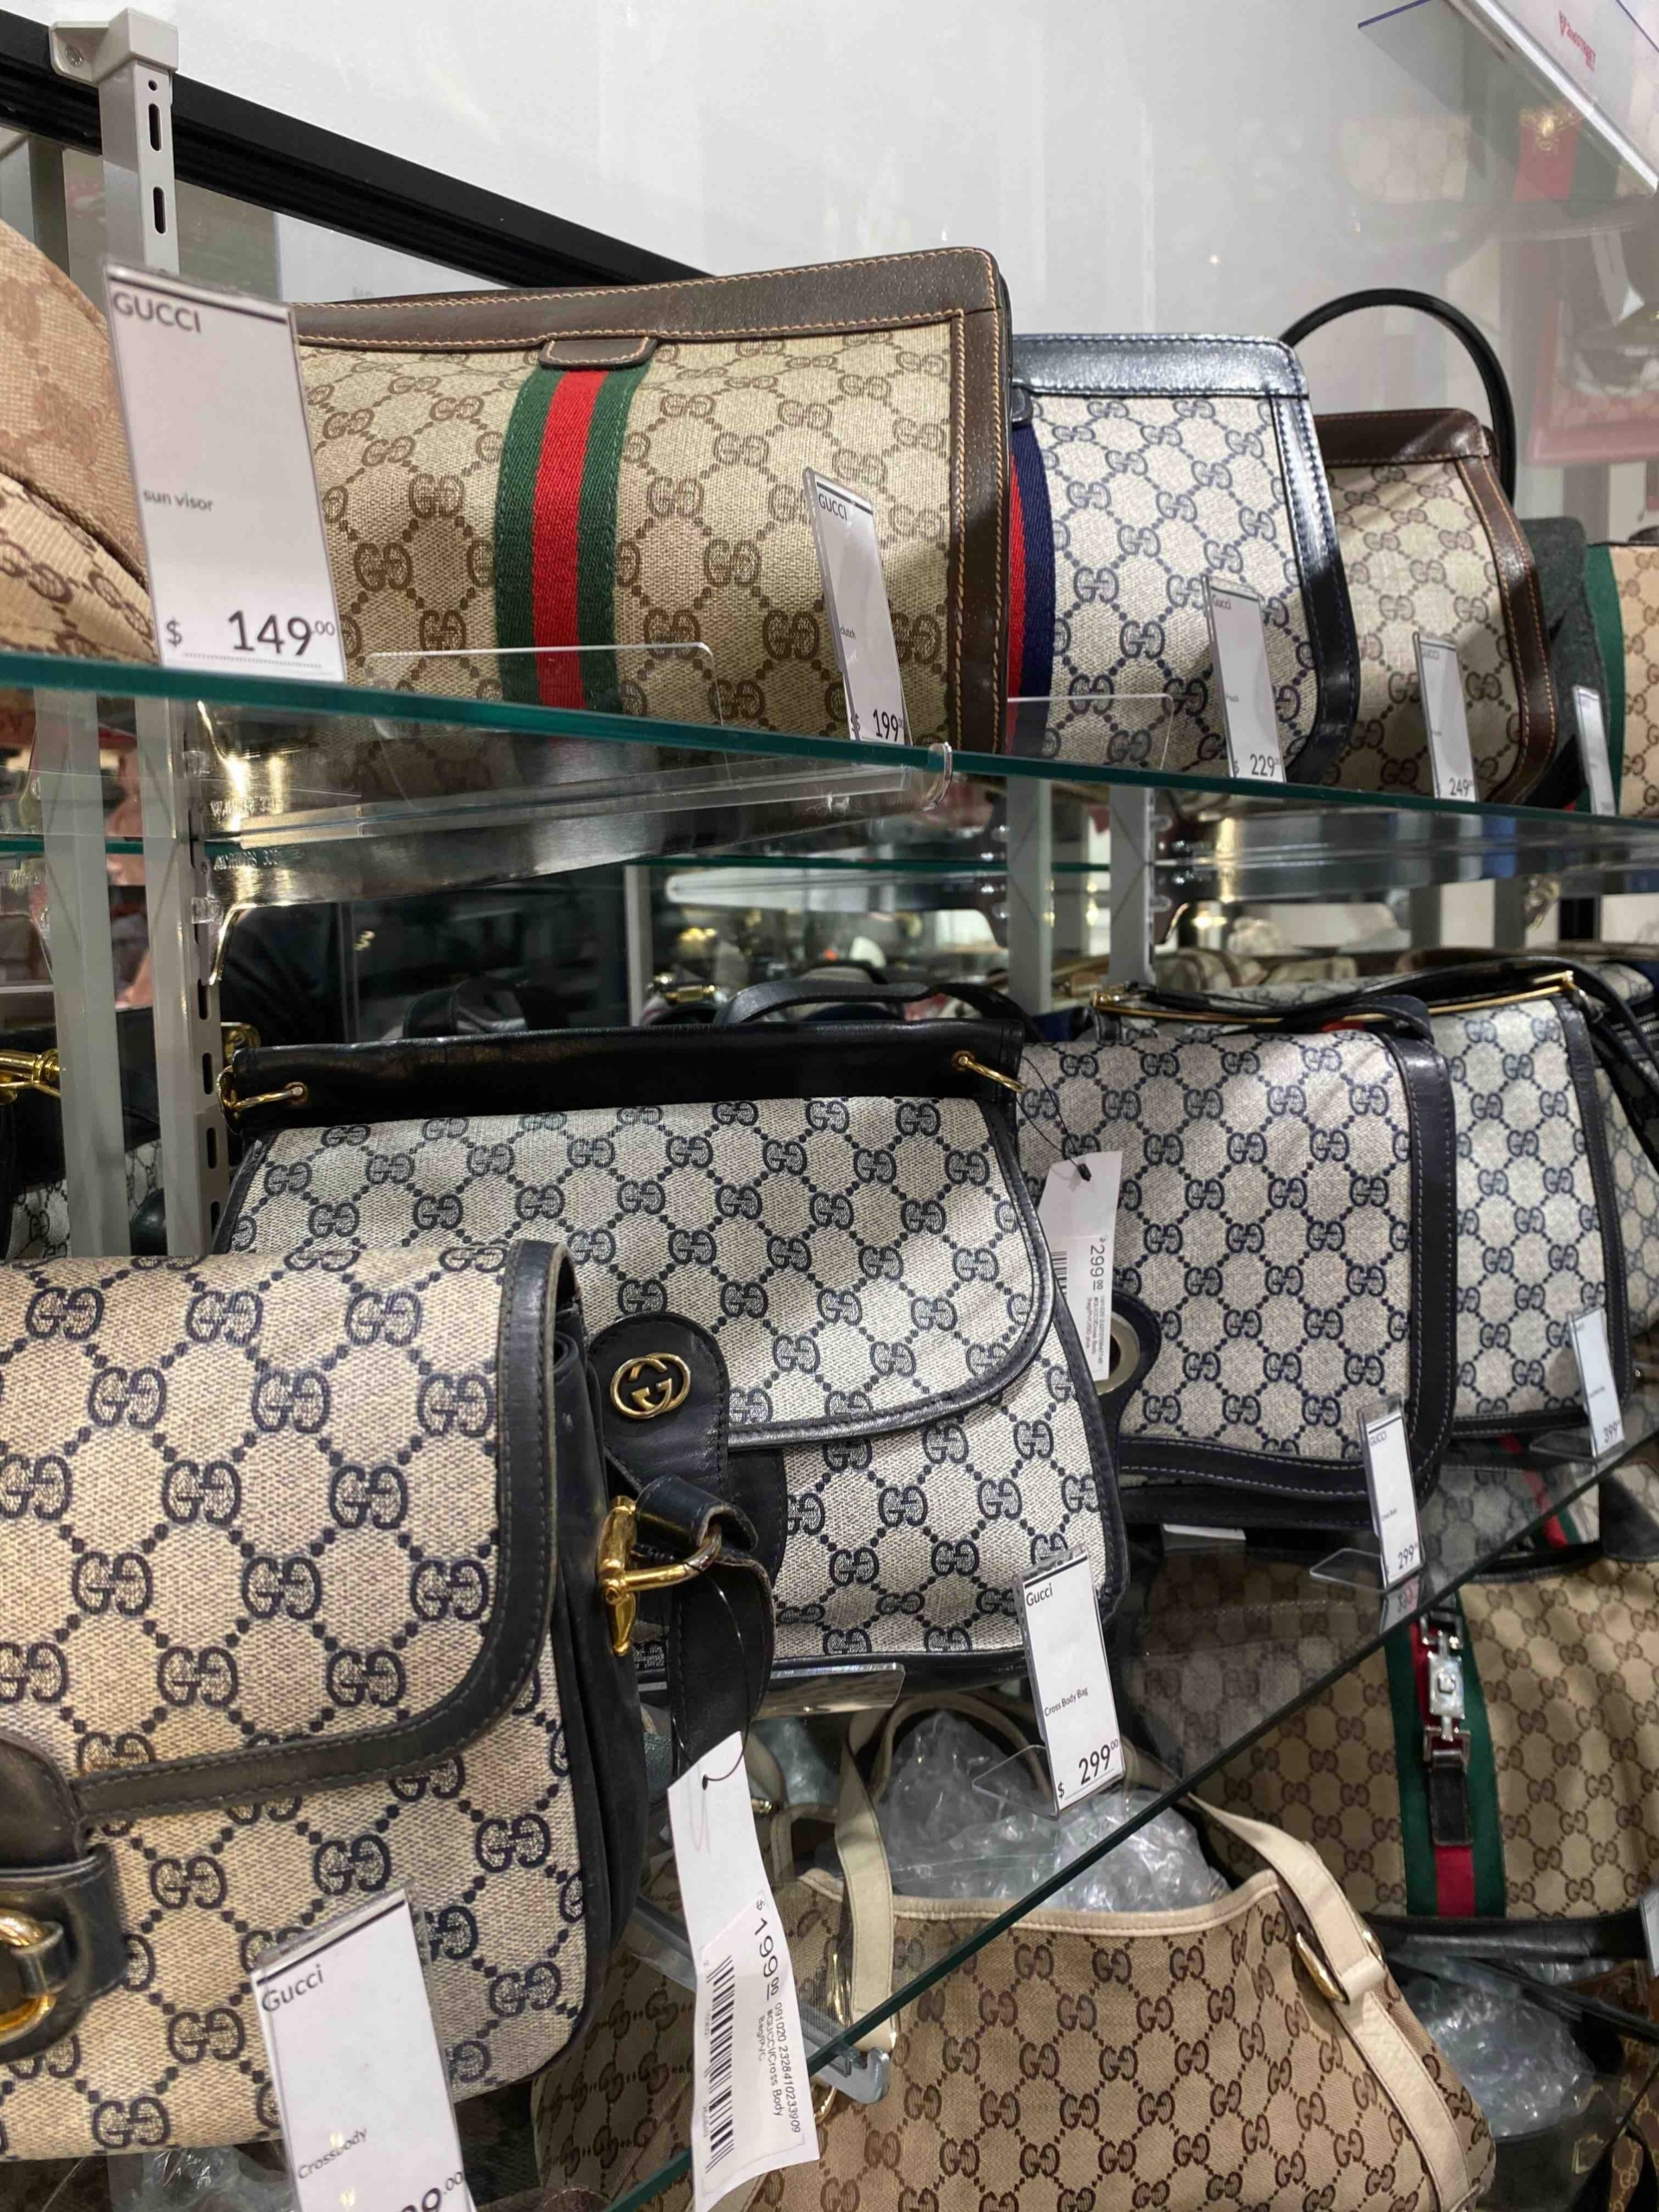 Stock up on Vintage Gucci At This NYC Thrift Store